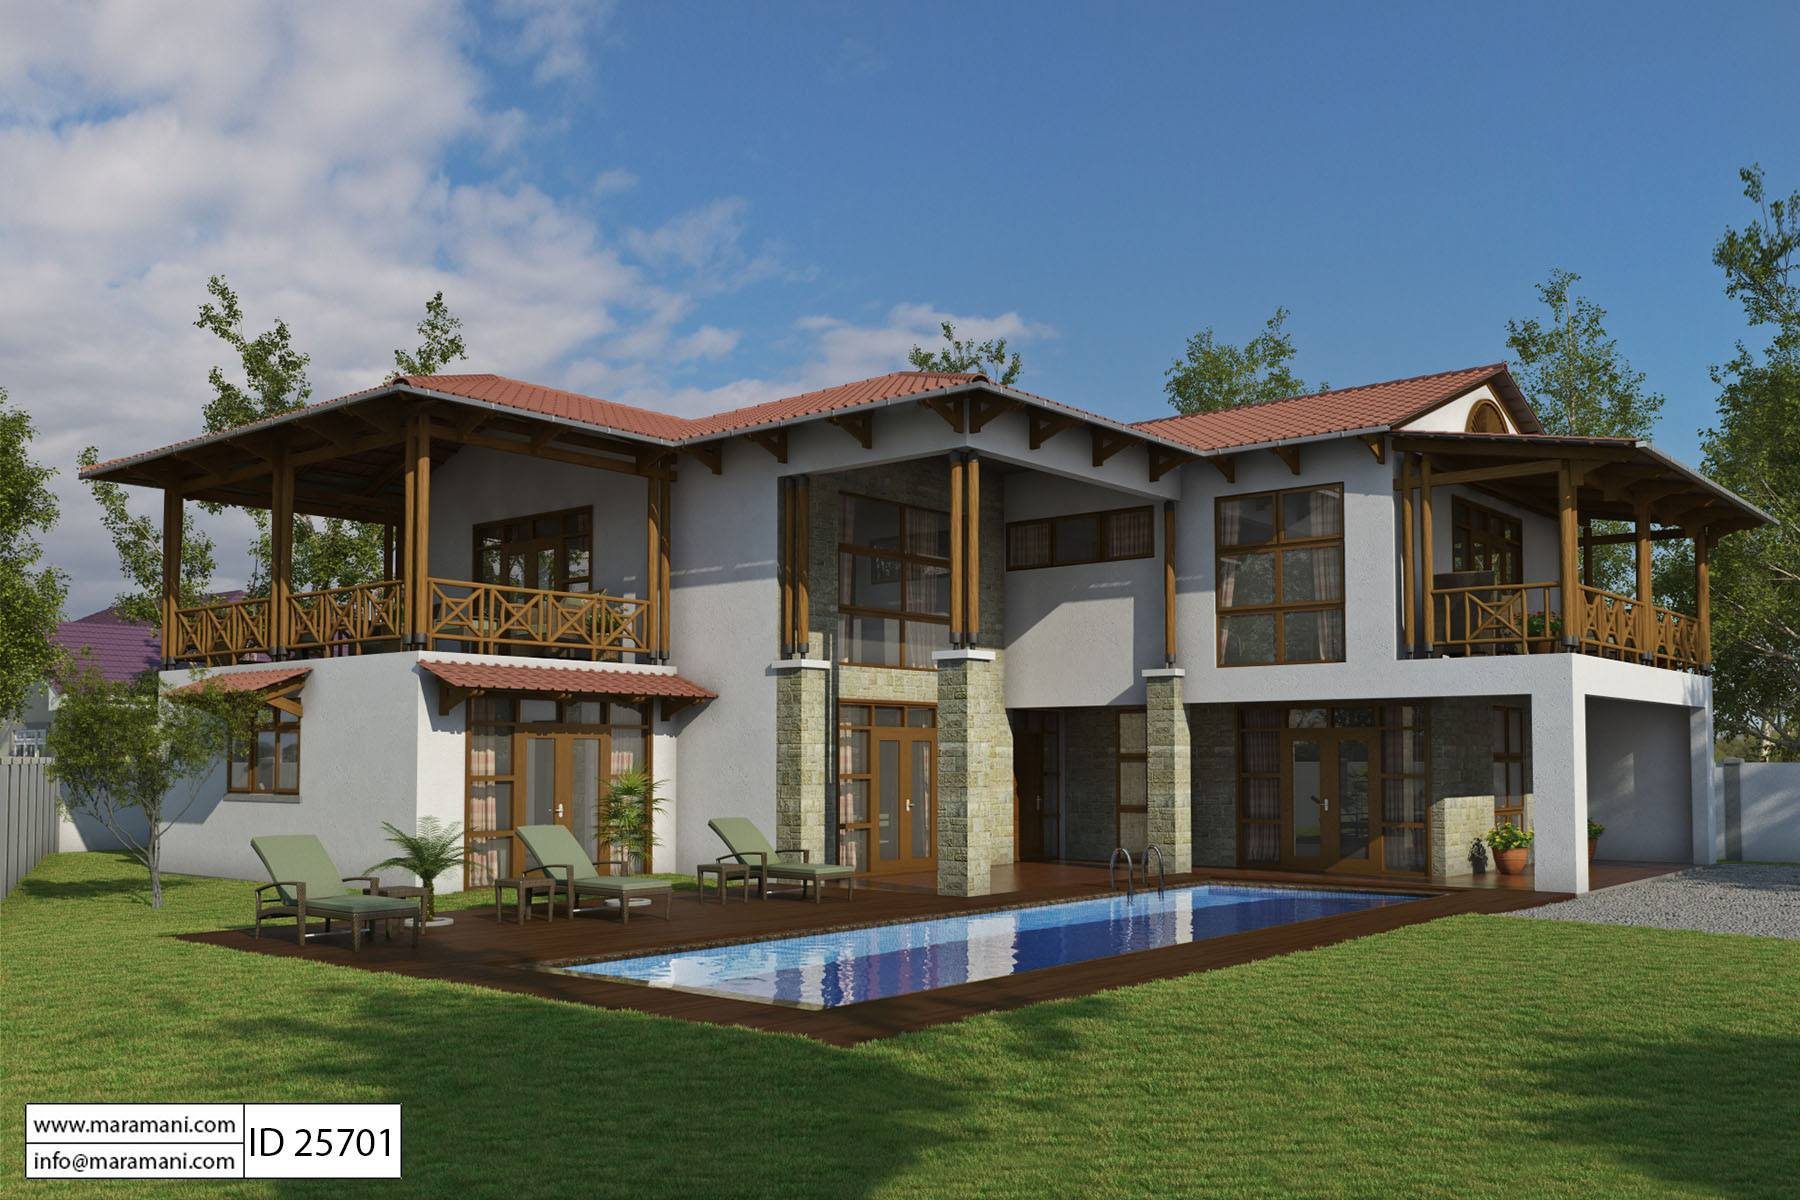 beautiful 5 bedroom house designs #2: 5 Bedroom House Design - ID 25701